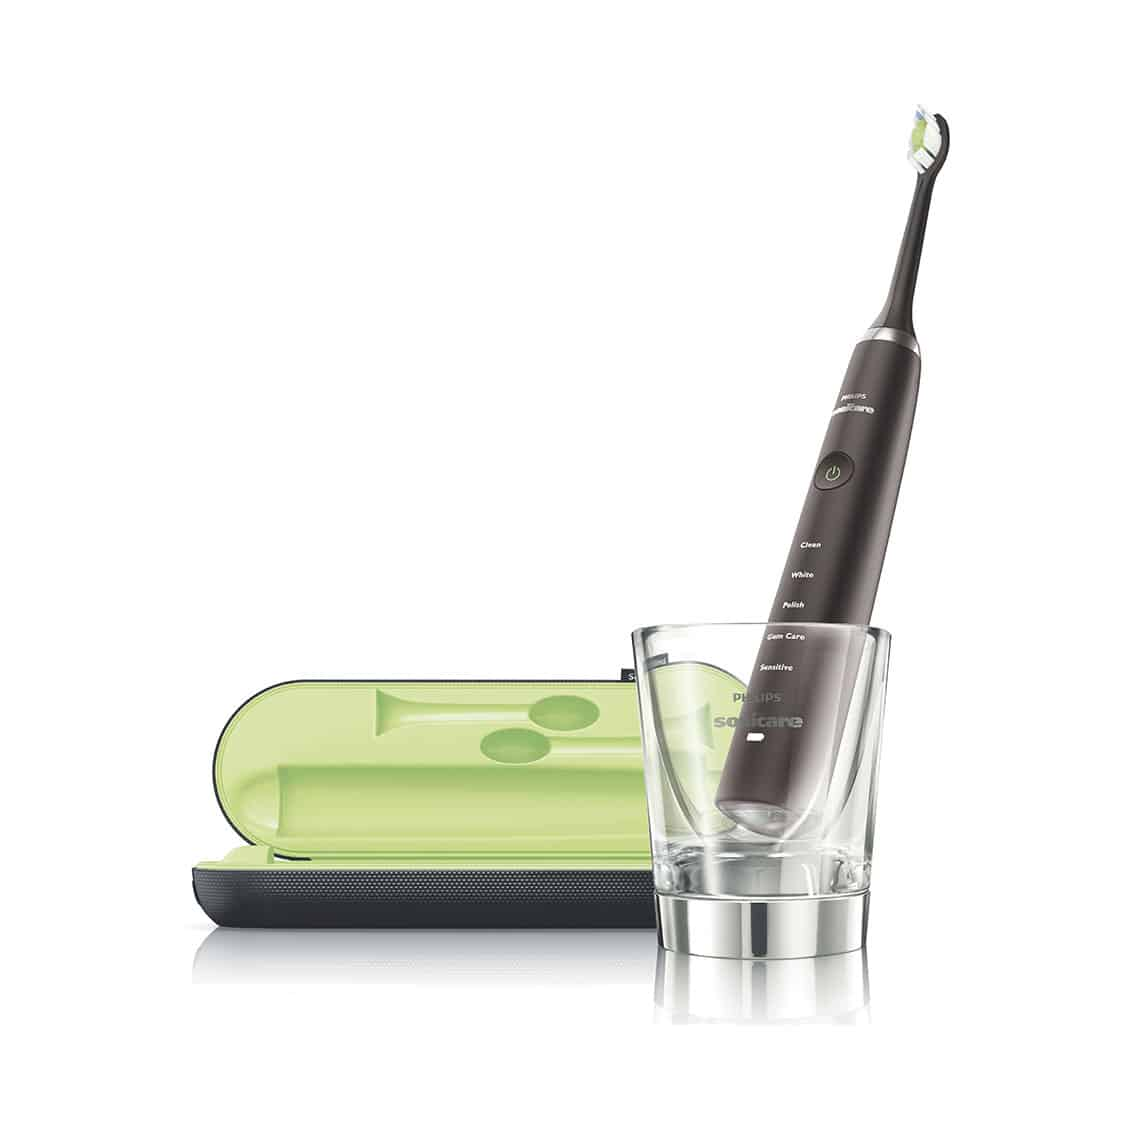 Philips Sonicare DiamondClean Electric Toothbrush Black